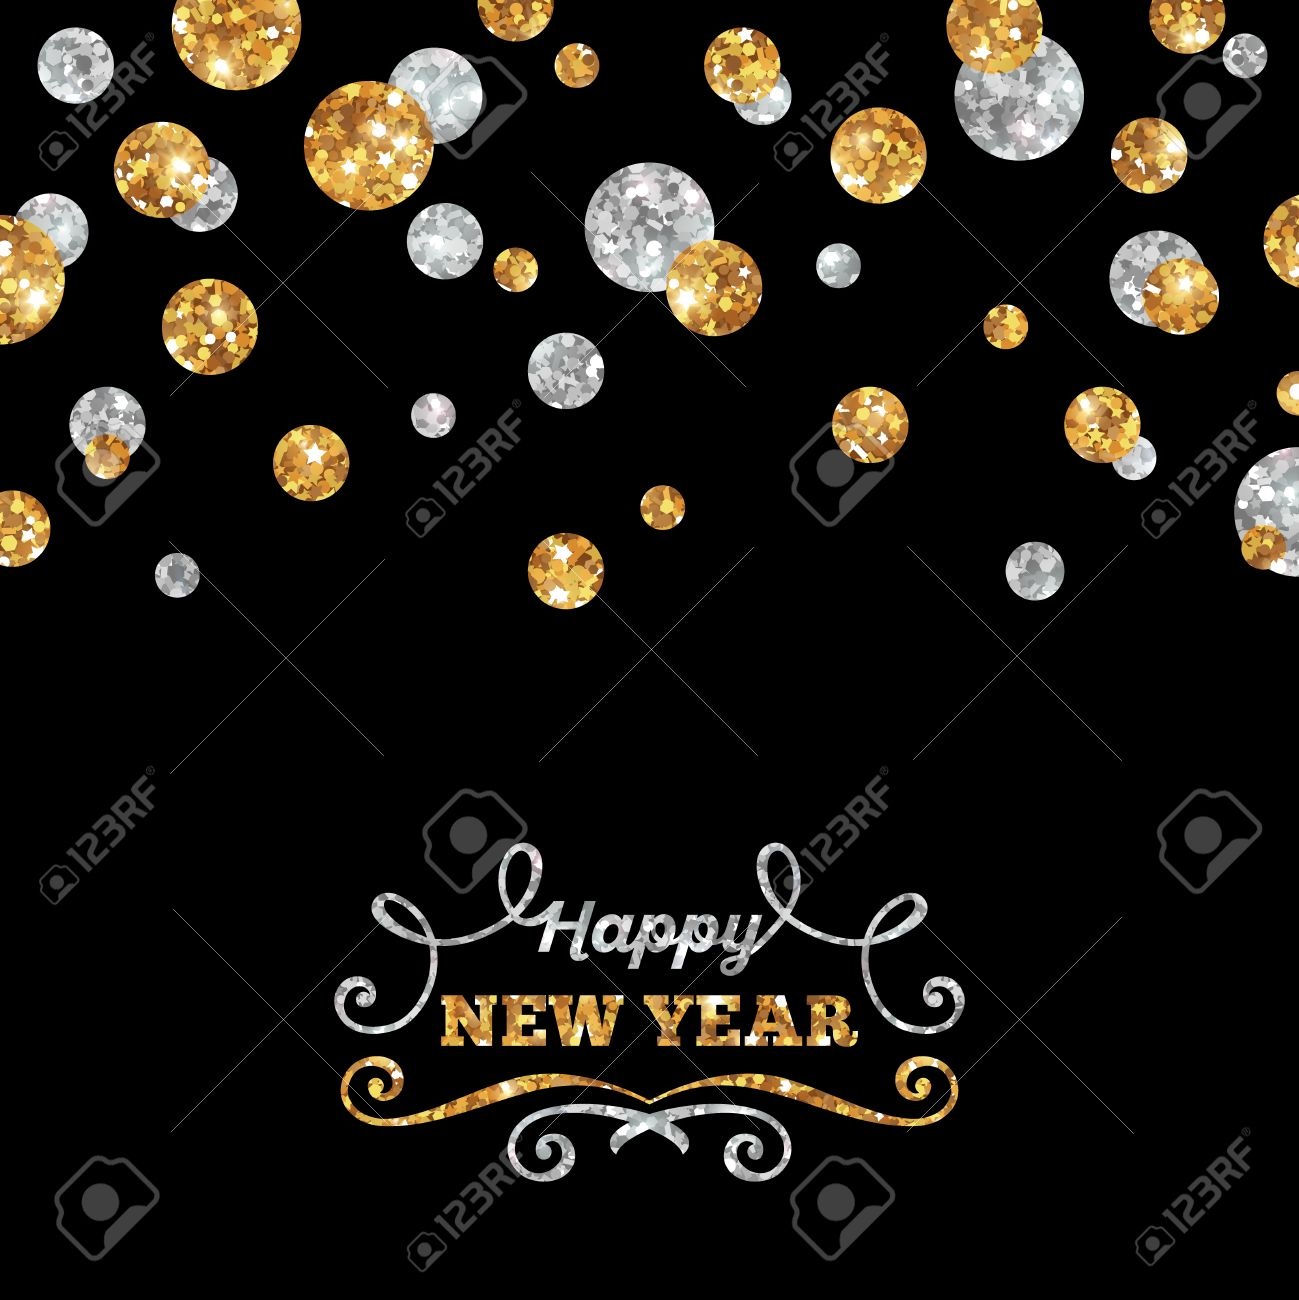 Happy New Year Greeting Card With Shining Gold And Silver Dots